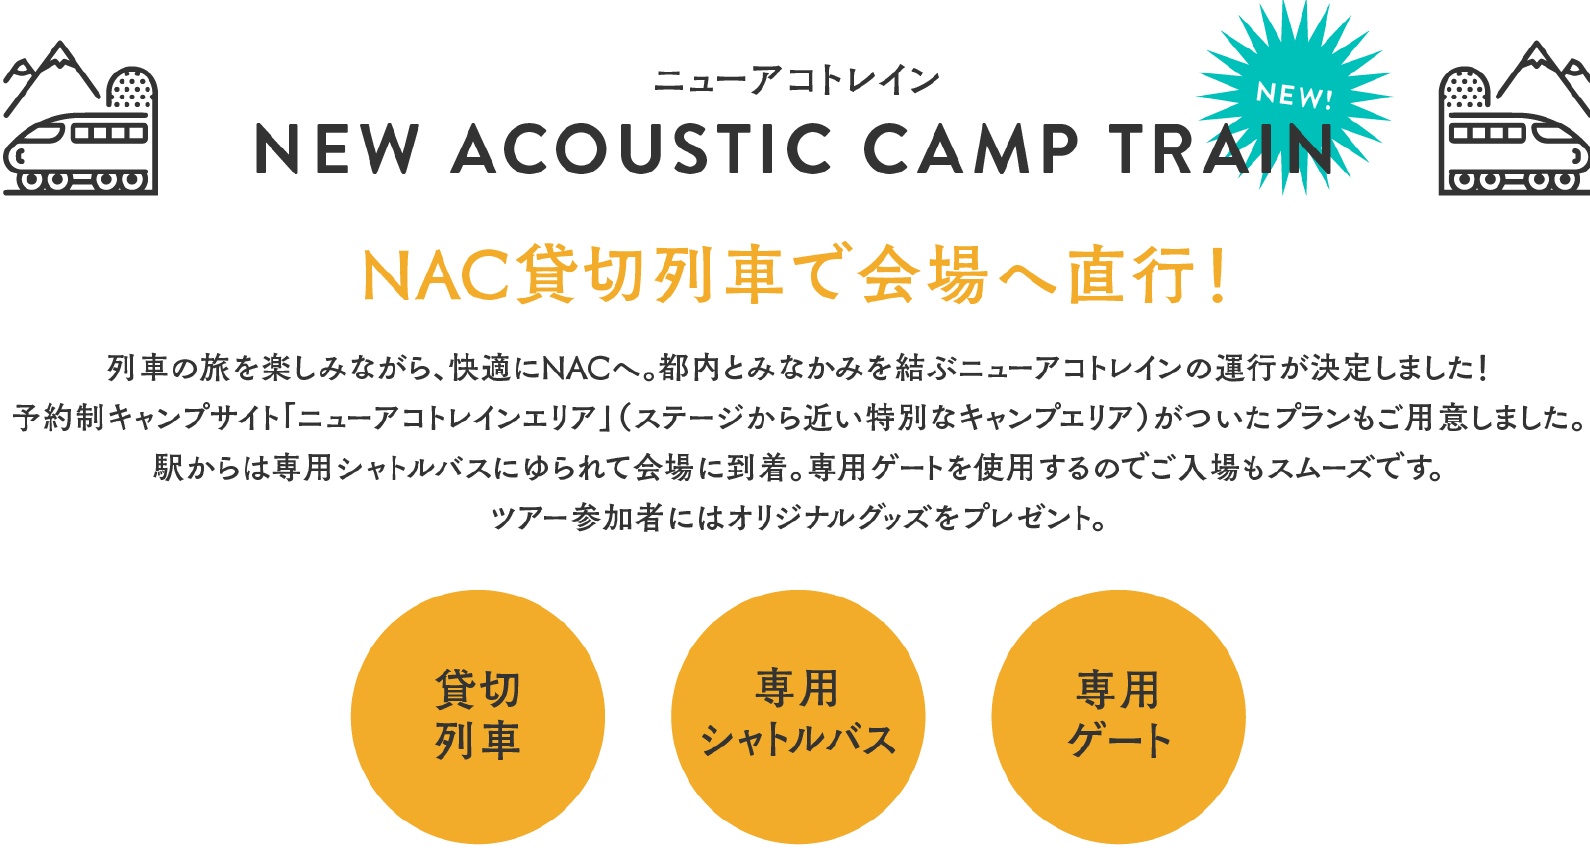 NEW ACOUSTIC CAMP TRAIN